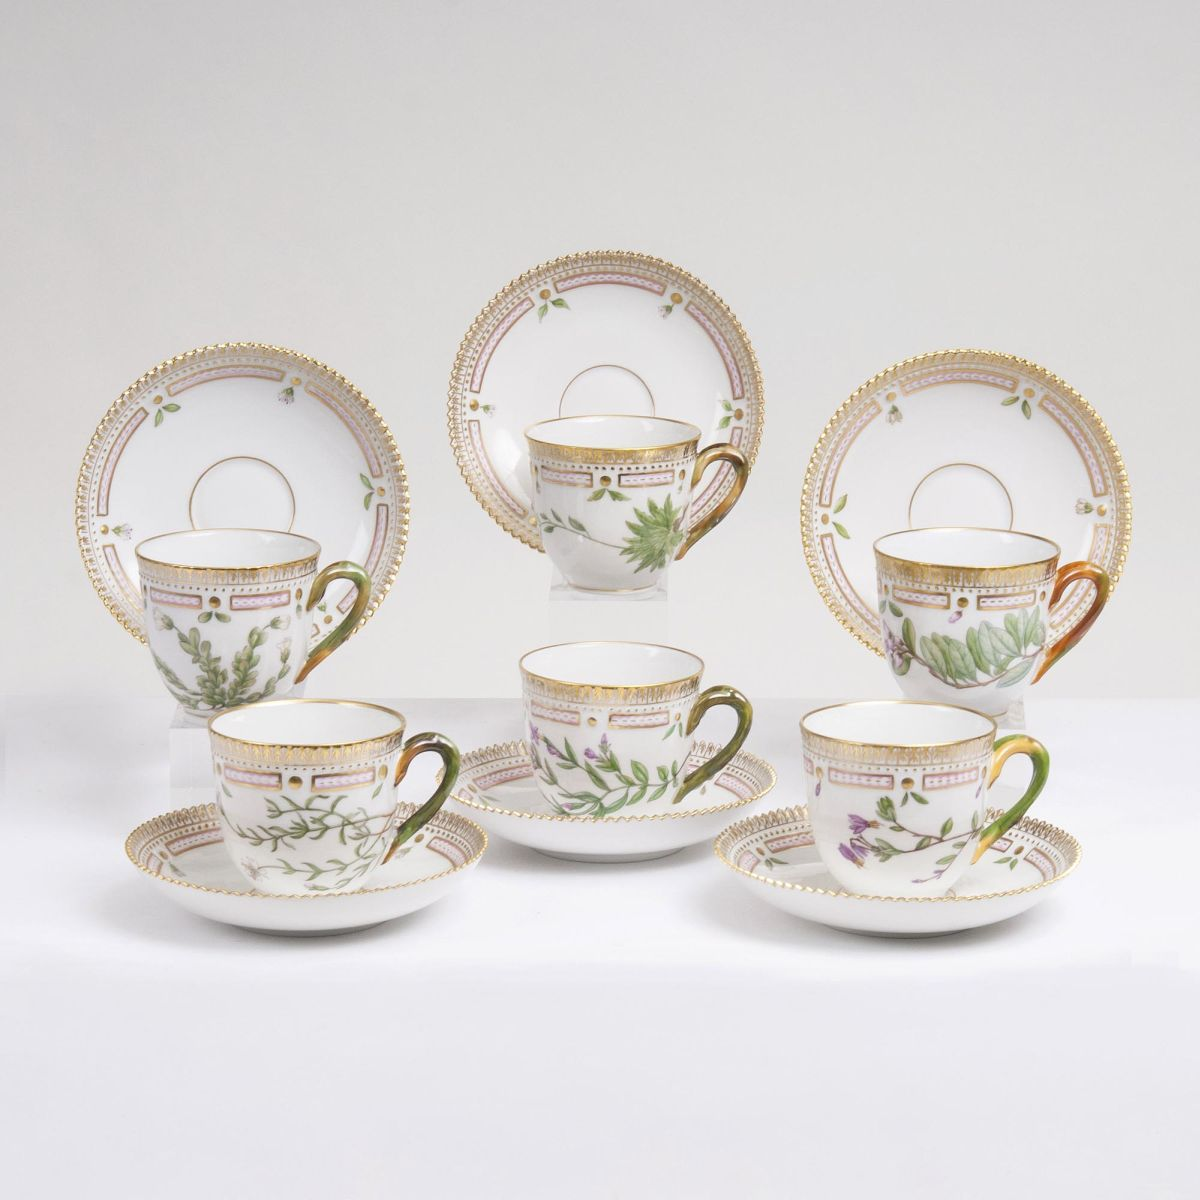 A Set of 6 Flora Danica Coffee Cups with Saucers